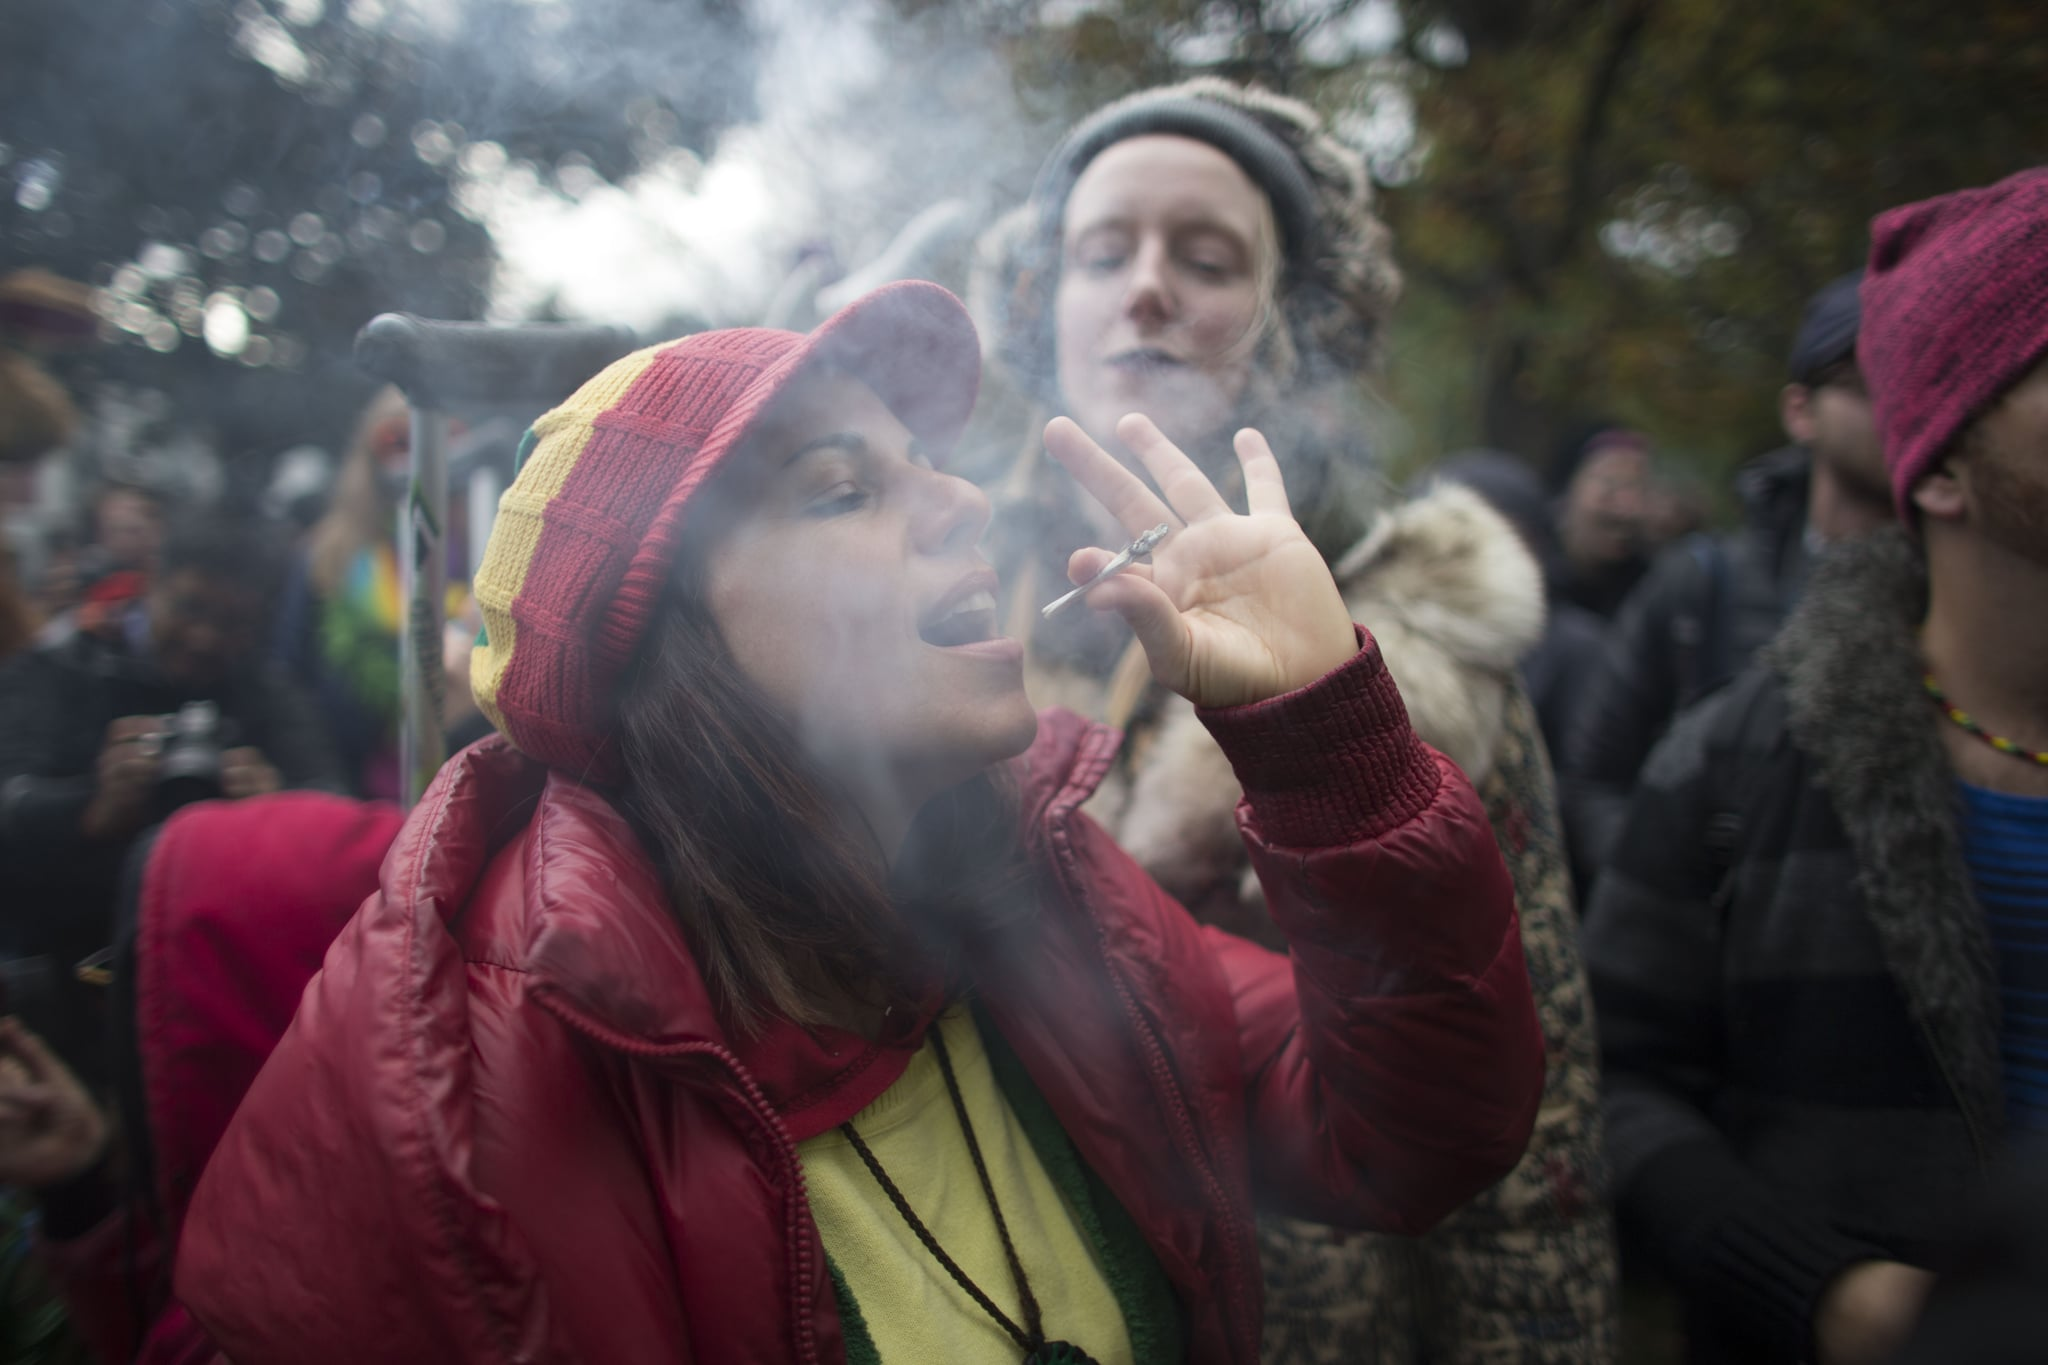 (FILES) In this file photo taken on October 17, 2018, a woman smokes a marijuana cigarette during a legalization party at Trinity Bellwoods Park in Toronto, Ontario. - Canada's health ministry warns parents against consuming cannabis because of the risks of second-hand smoke, while warning it also